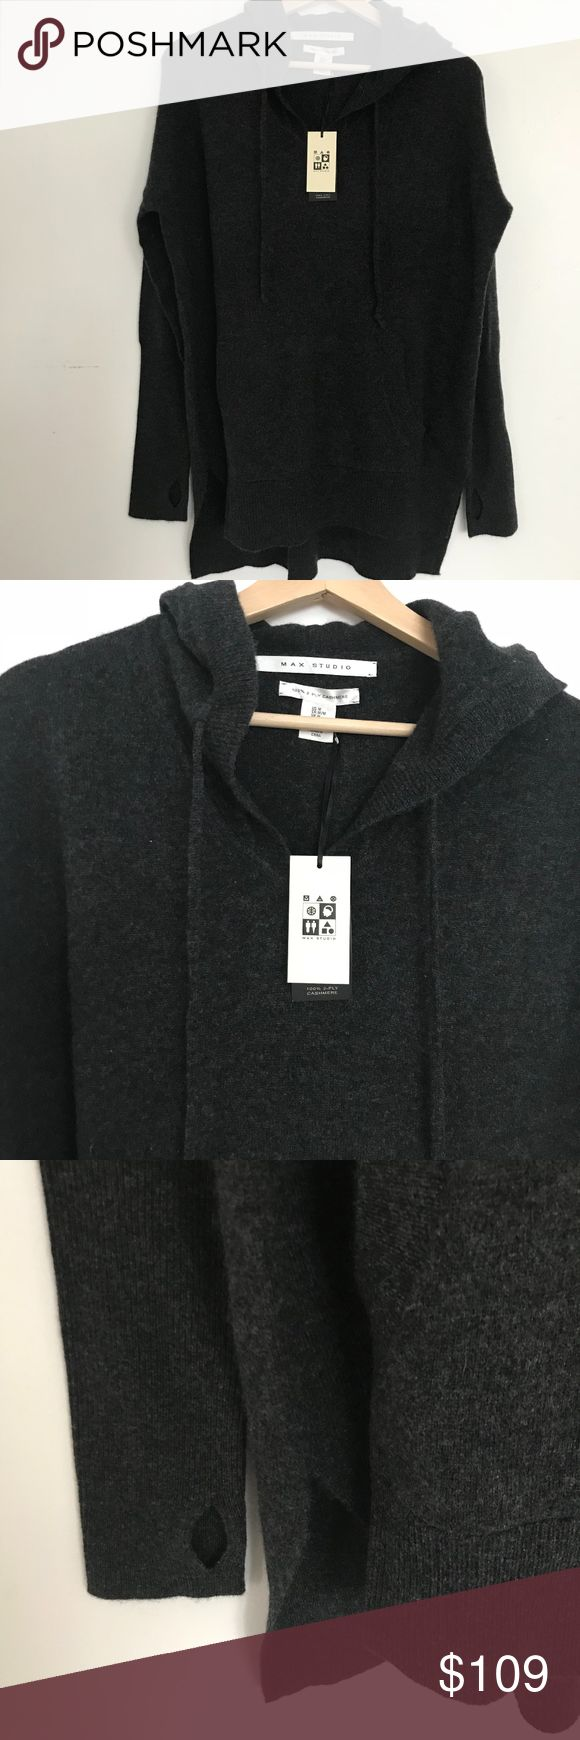 MAX STUDIO Oversized 100% Cashmere Hoodie GRAY L So comfy!  Dark Gray 100% 2-ply cashmere Hoodie with drawstring, longer back hem, and finger holes.  Dark Gray size LARGE Max Studio Sweaters